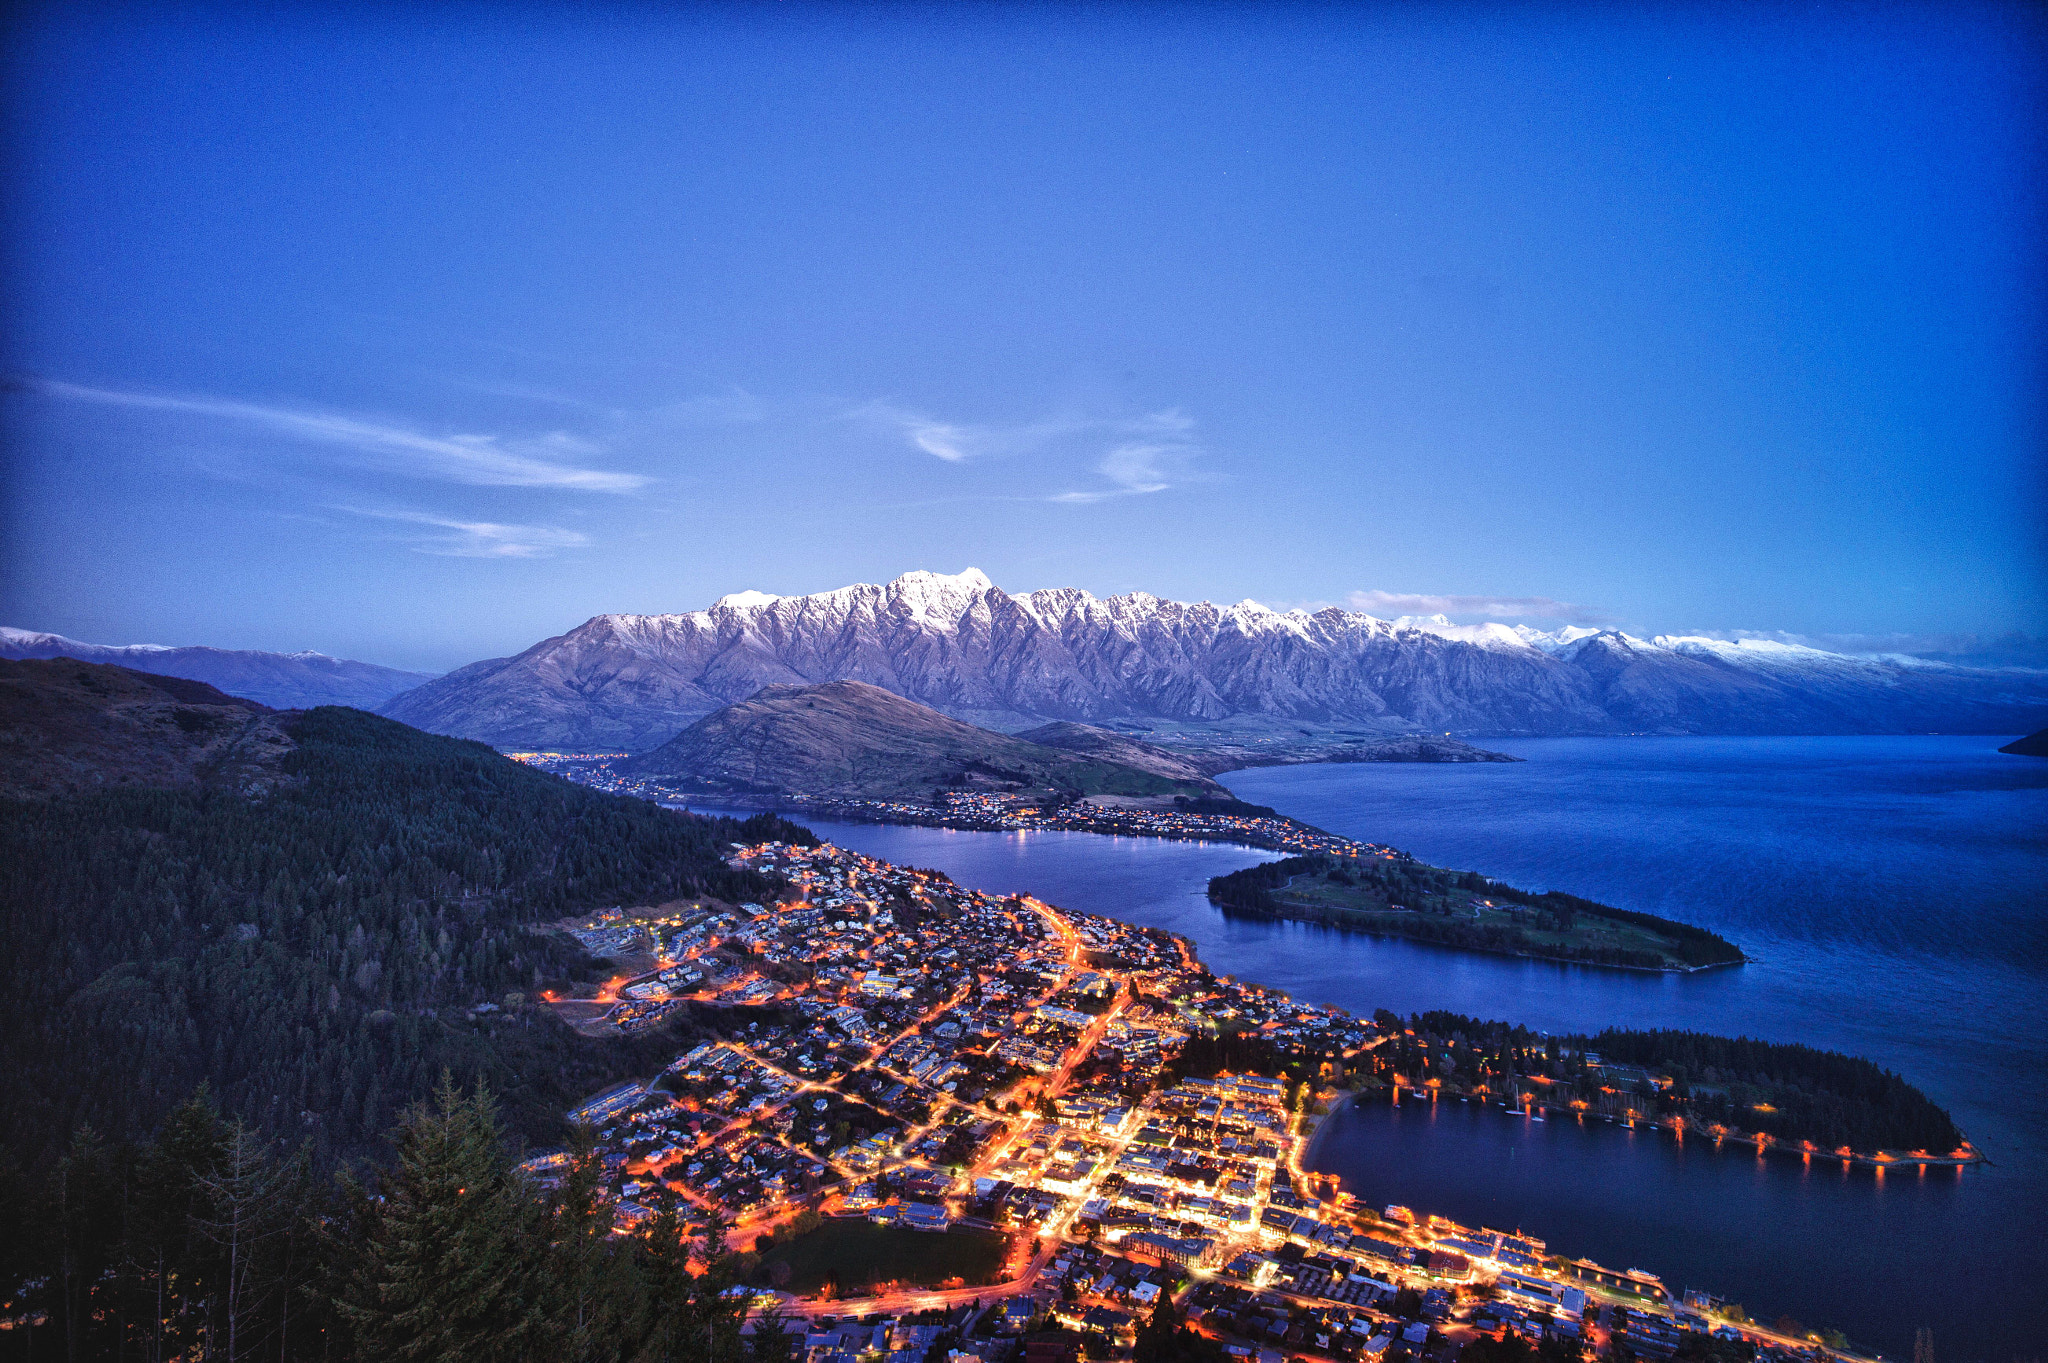 Photograph Queenstown - New Zealand by Ockert Le Roux on 500px